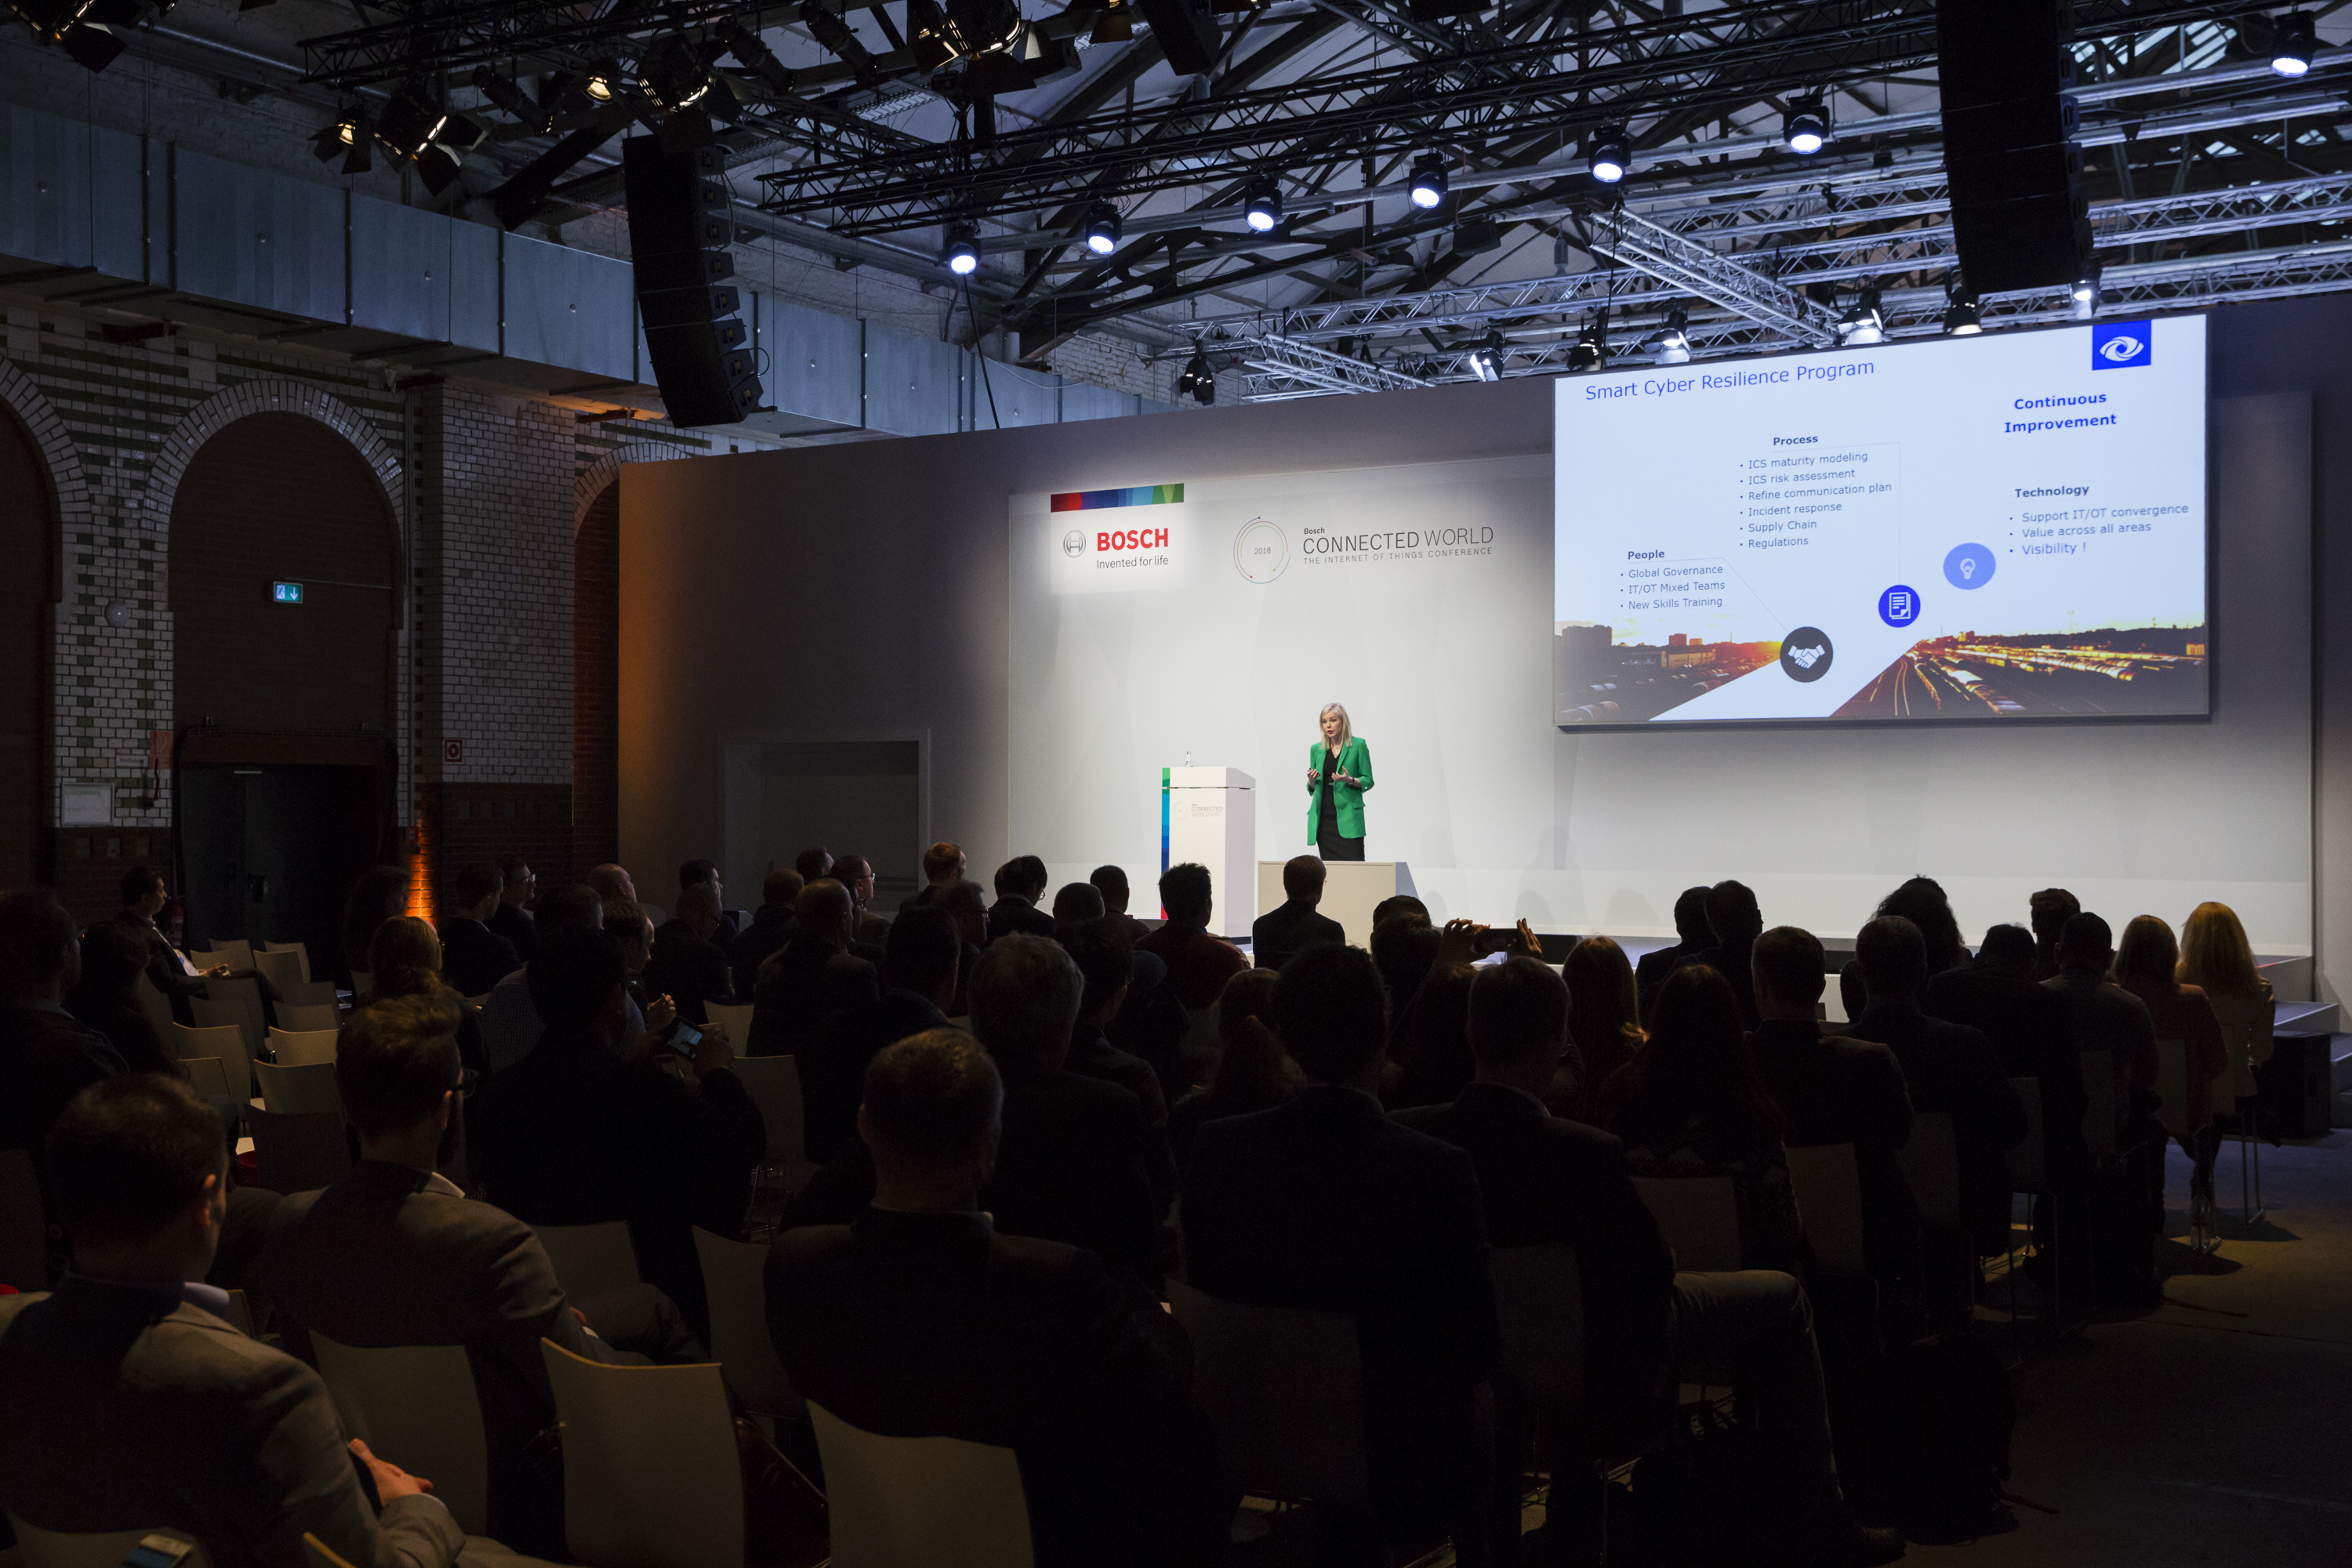 SecurityMatters presenting at the Bosch ConnectedWorld 2018